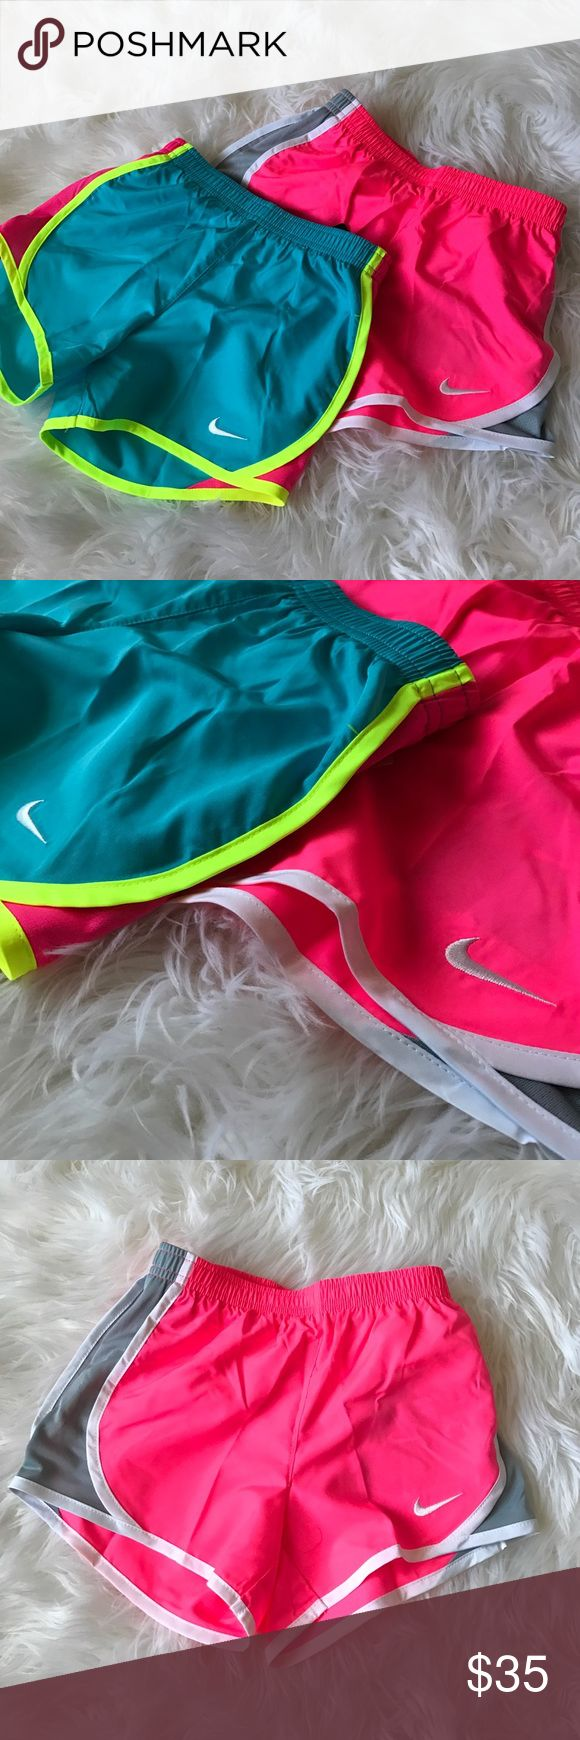 Nike shorts bundle Girls Nike fro-fit shorts bundle- these have the built in underwear. ReTails for $50! NWT Nike Bottoms Shorts